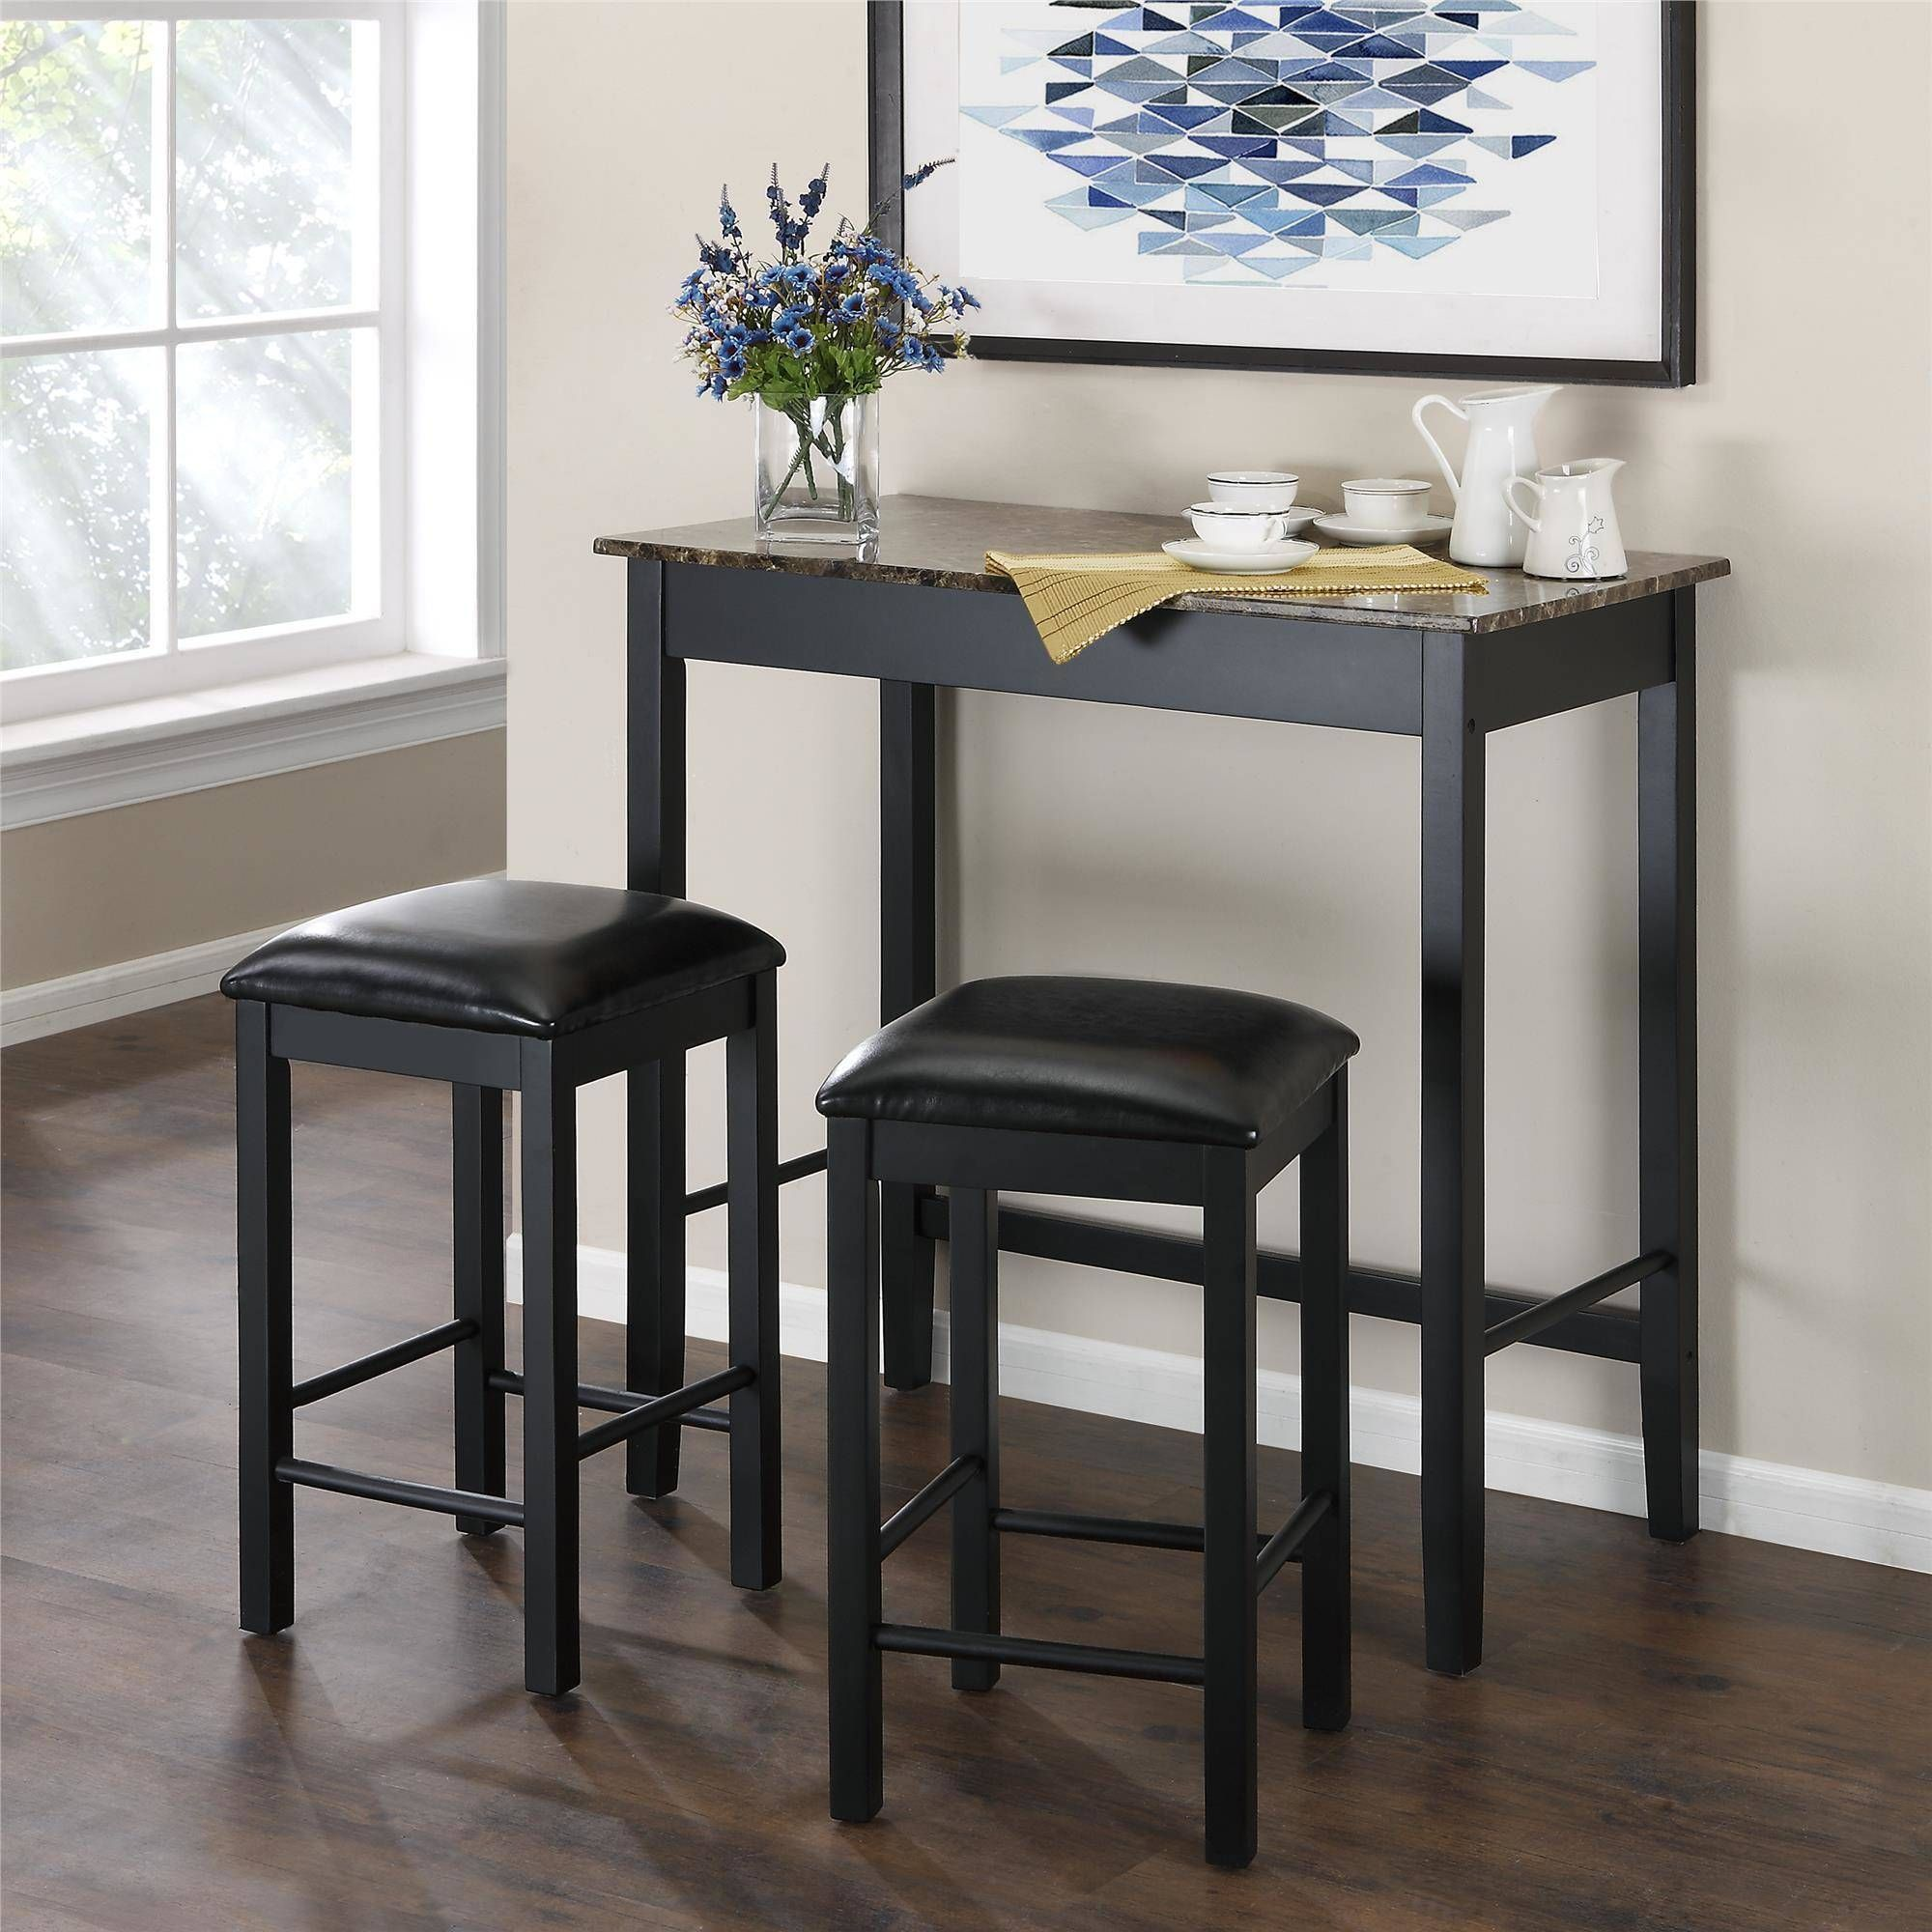 Image Result For Small Black Table And Chairs Kitchen